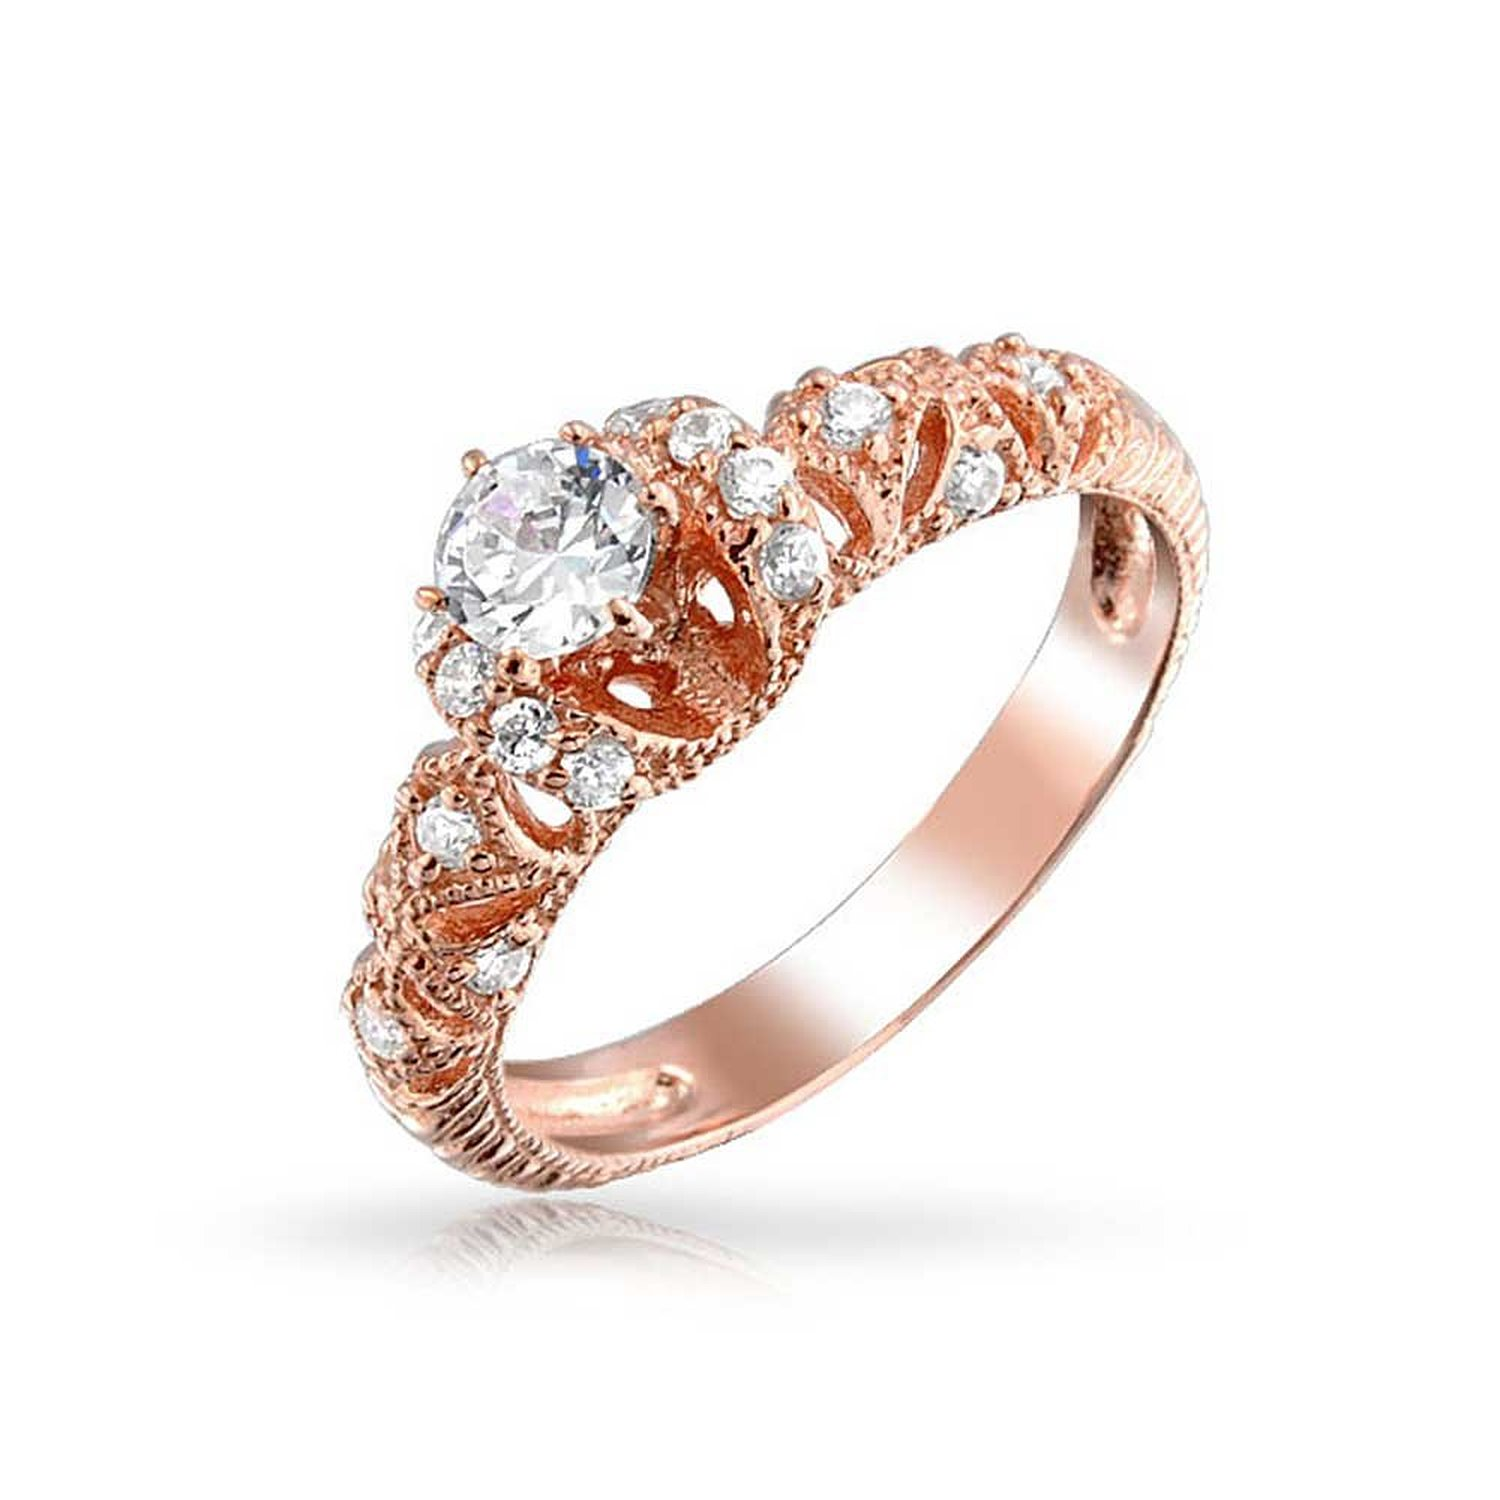 Amazon.com: Bling Jewelry Filigree Art Deco Rose Gold Vermeil Engagement Ring 925 Silver: Jewelry